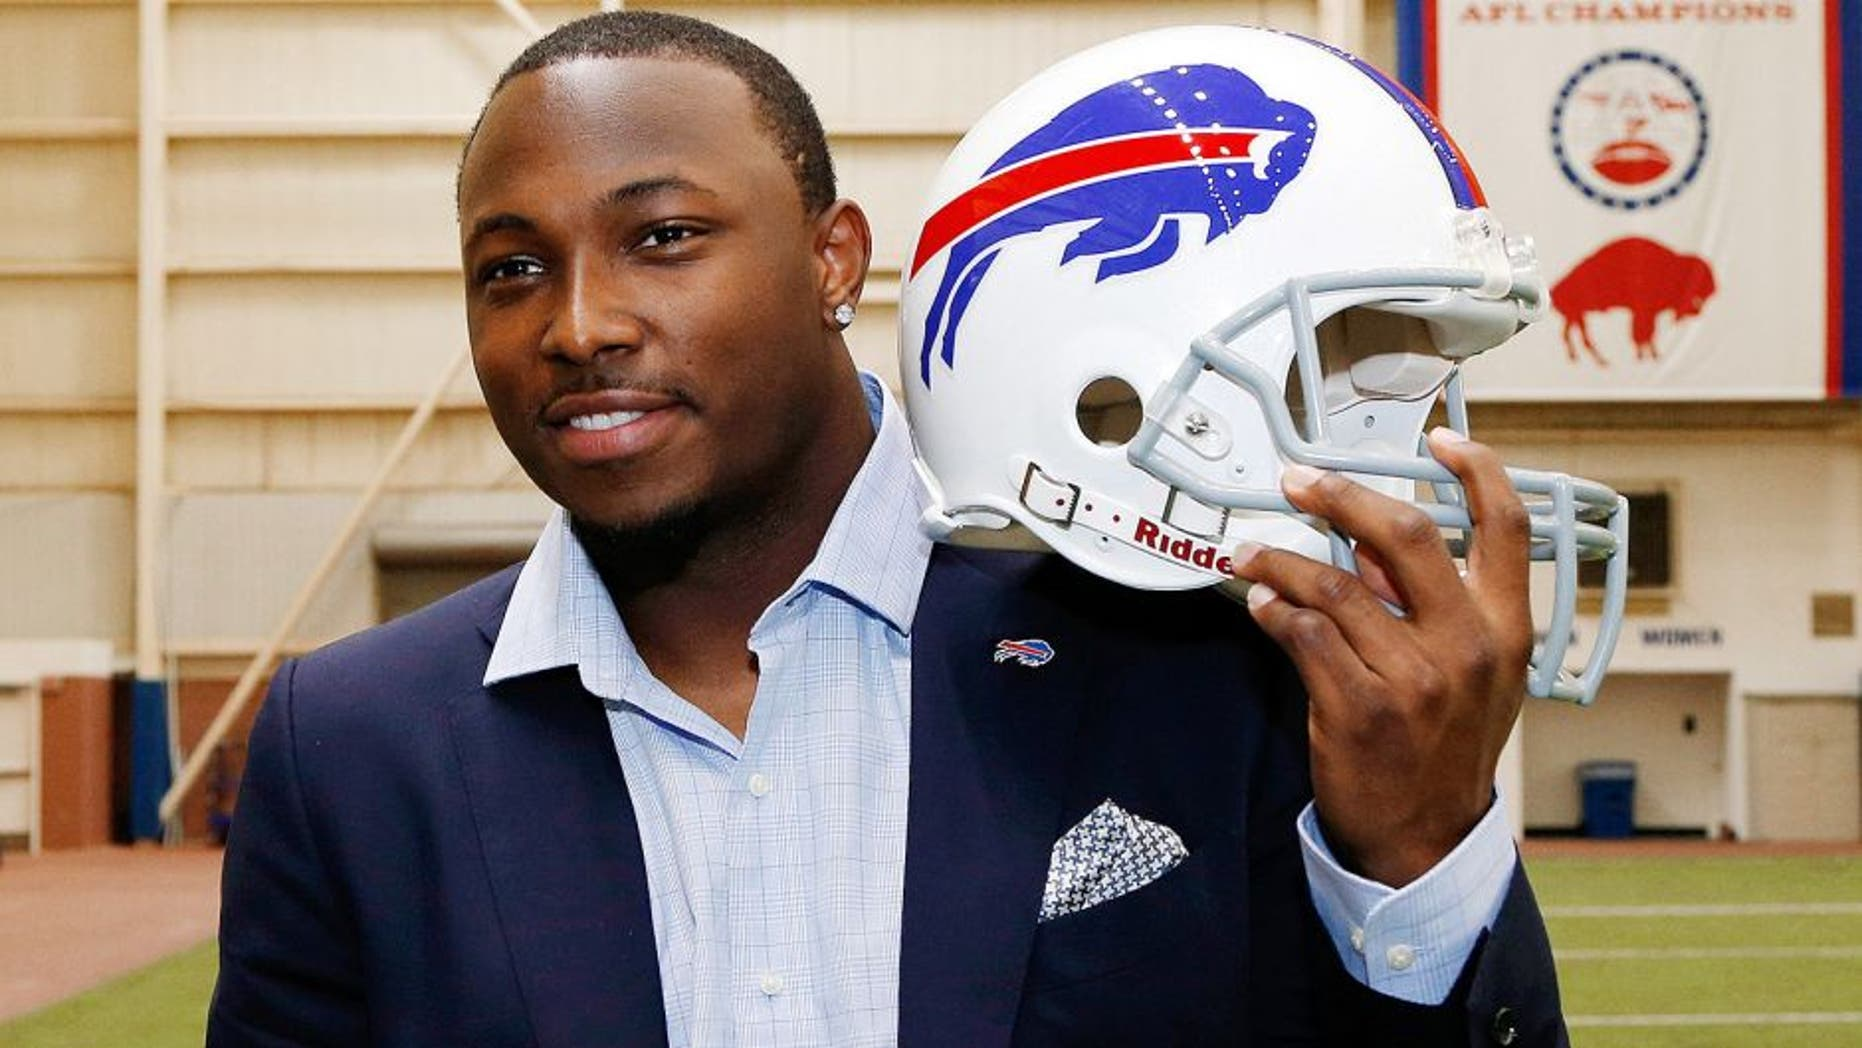 Mar 10, 2015; Orchard Park, NY, USA; Buffalo Bills running back LeSean McCoy poses with a Bills helmet in the AD Pro training facility after a press conference at Ralph Wilson Stadium. Mandatory Credit: Kevin Hoffman-USA TODAY Sports